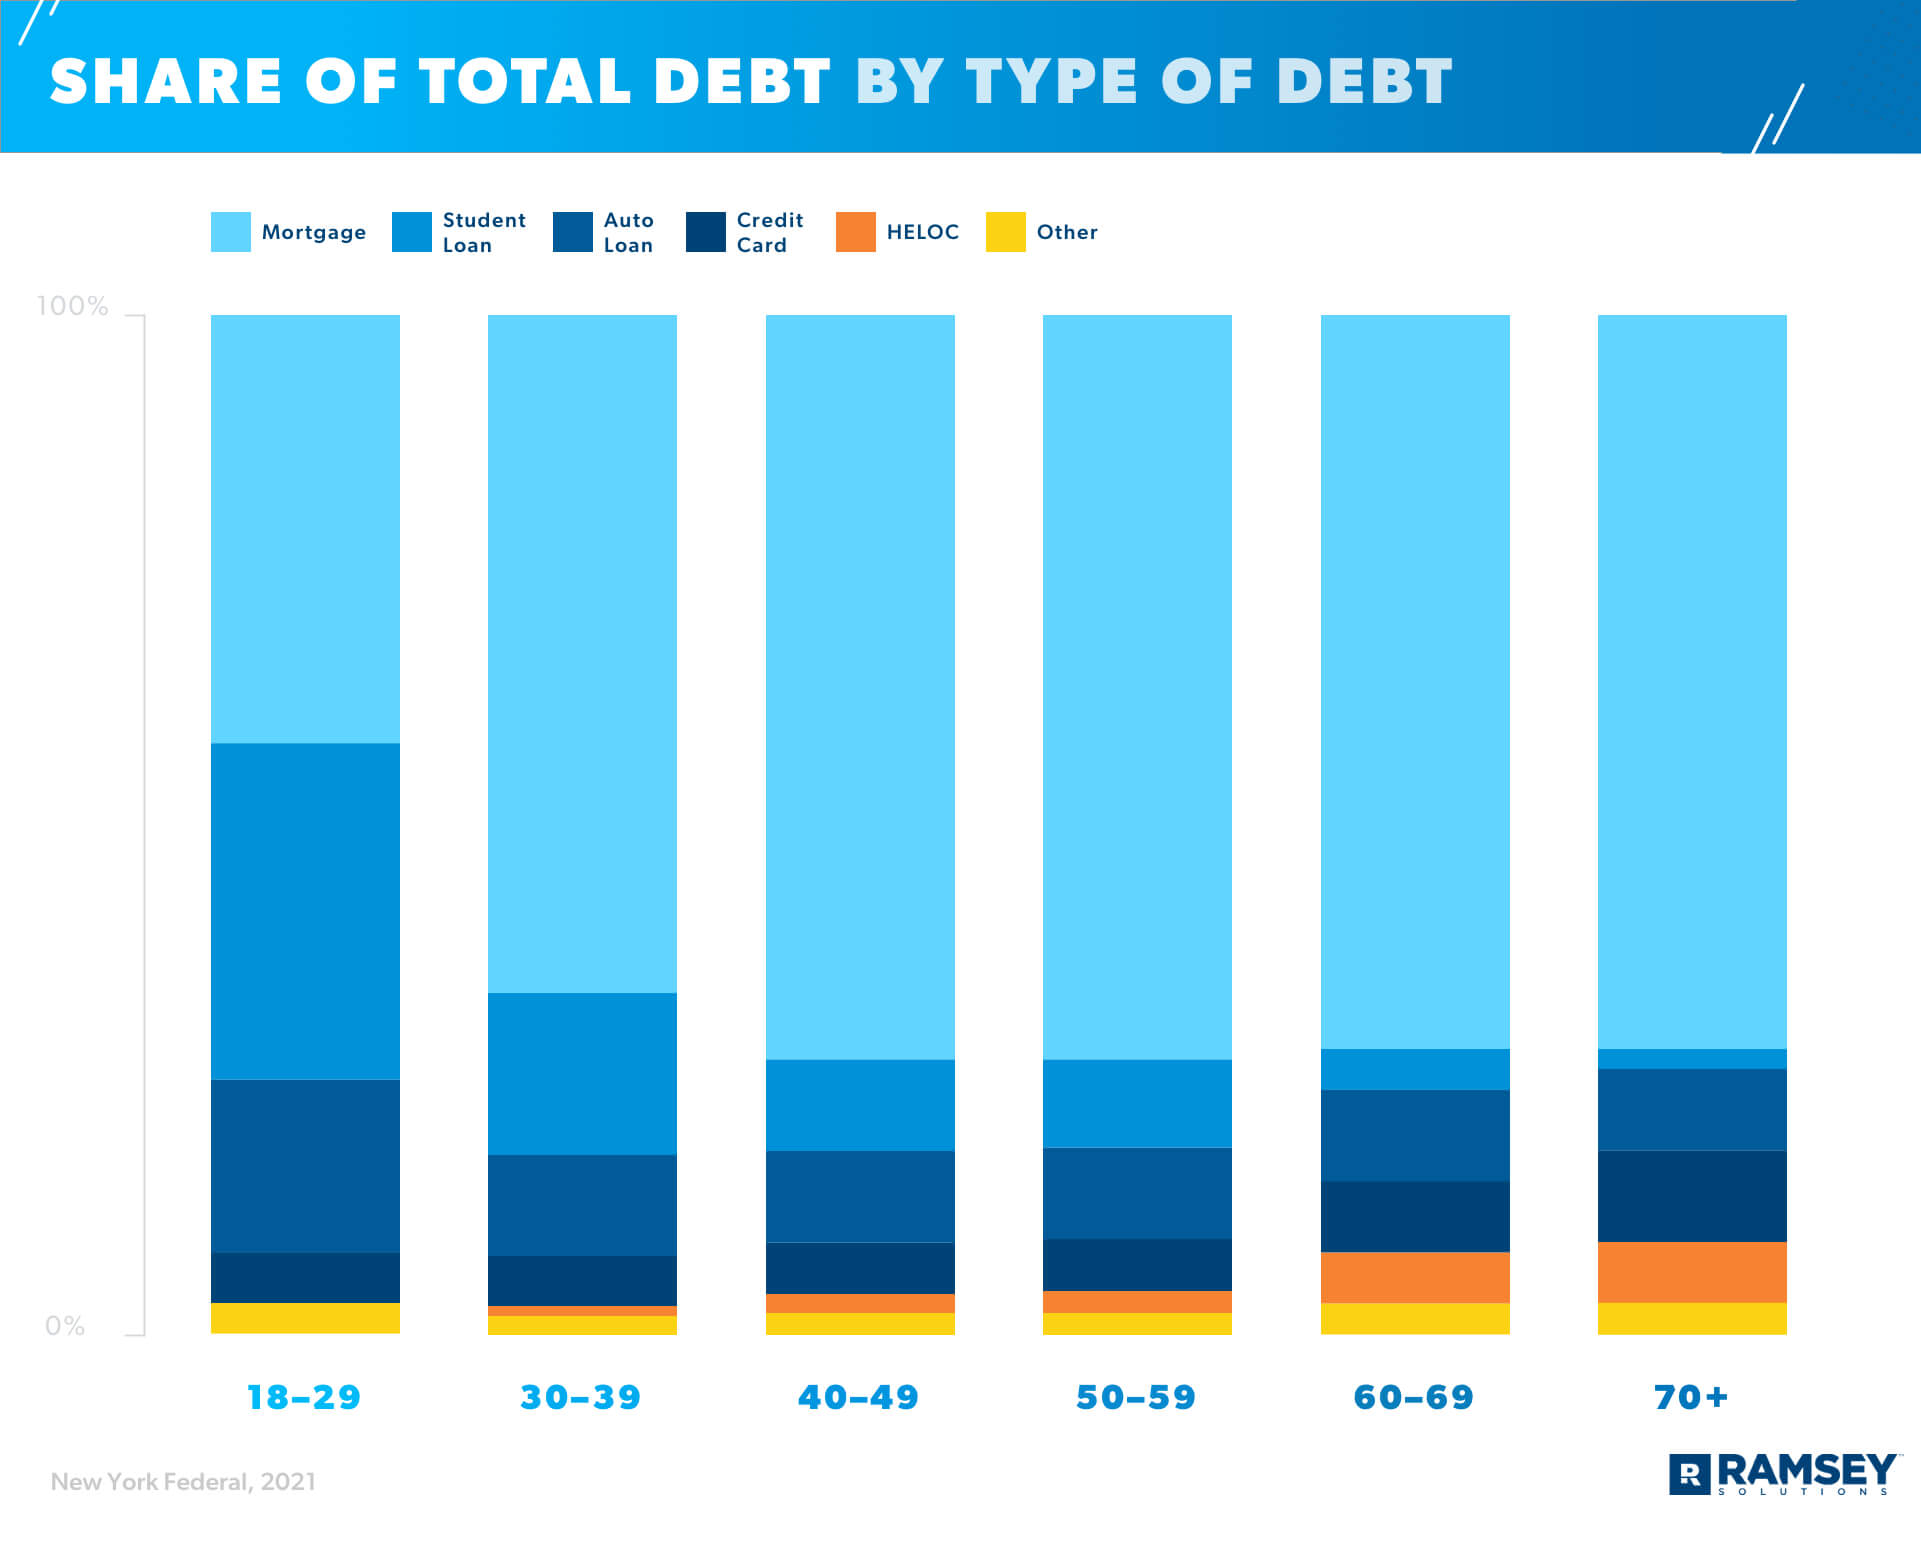 Share of Total Debt By Type of Debt